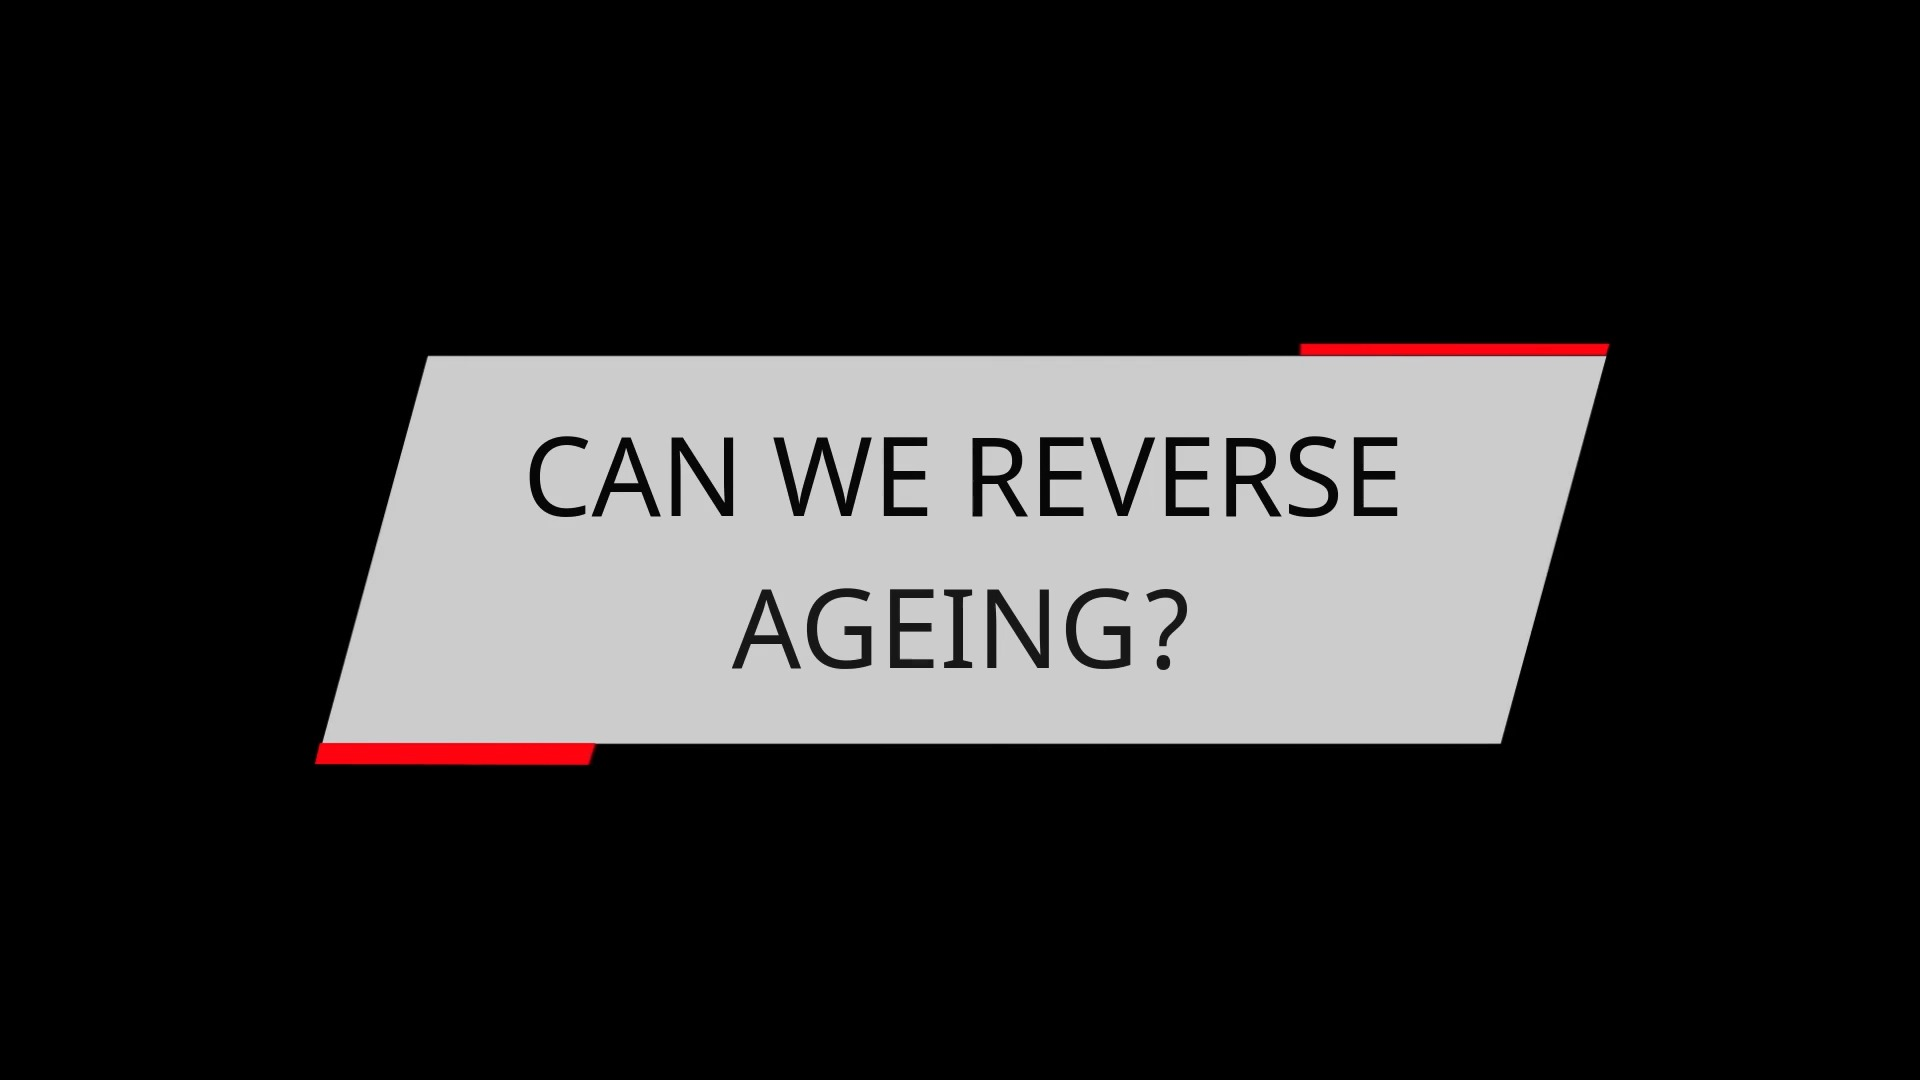 CAN WE REVERSE AGEING